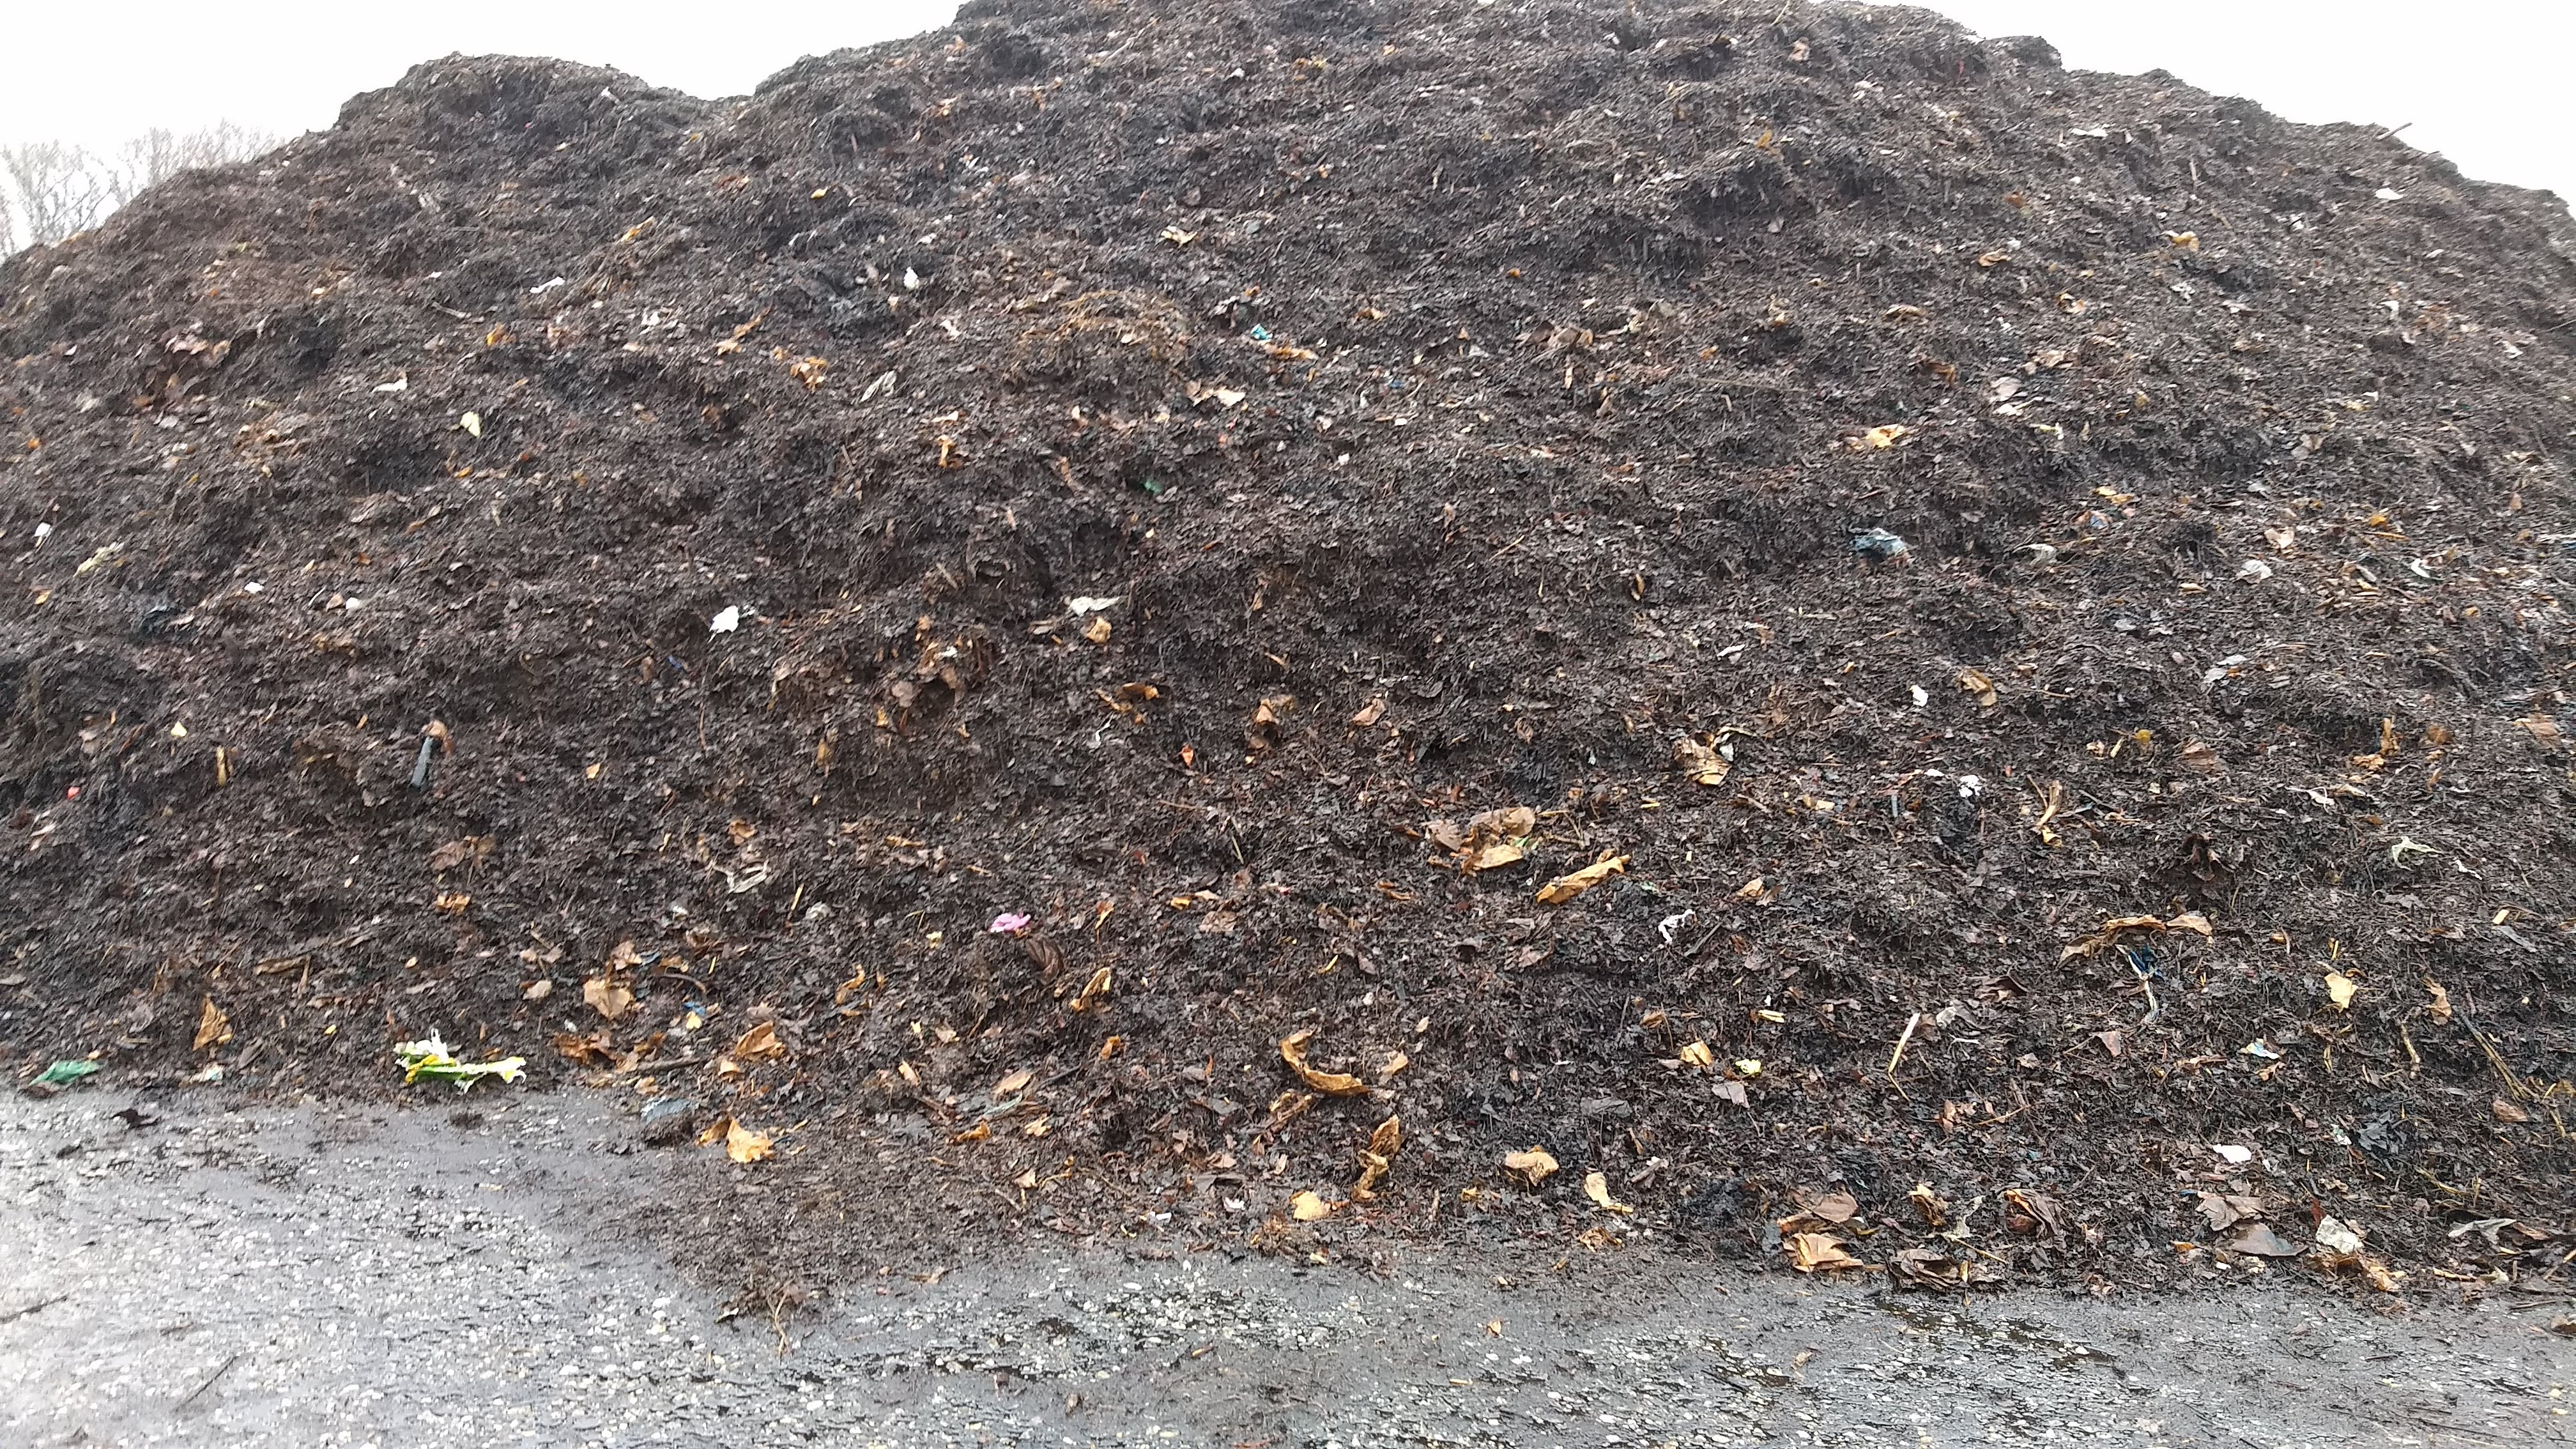 A compost pile at Prince George's County's compost facility.